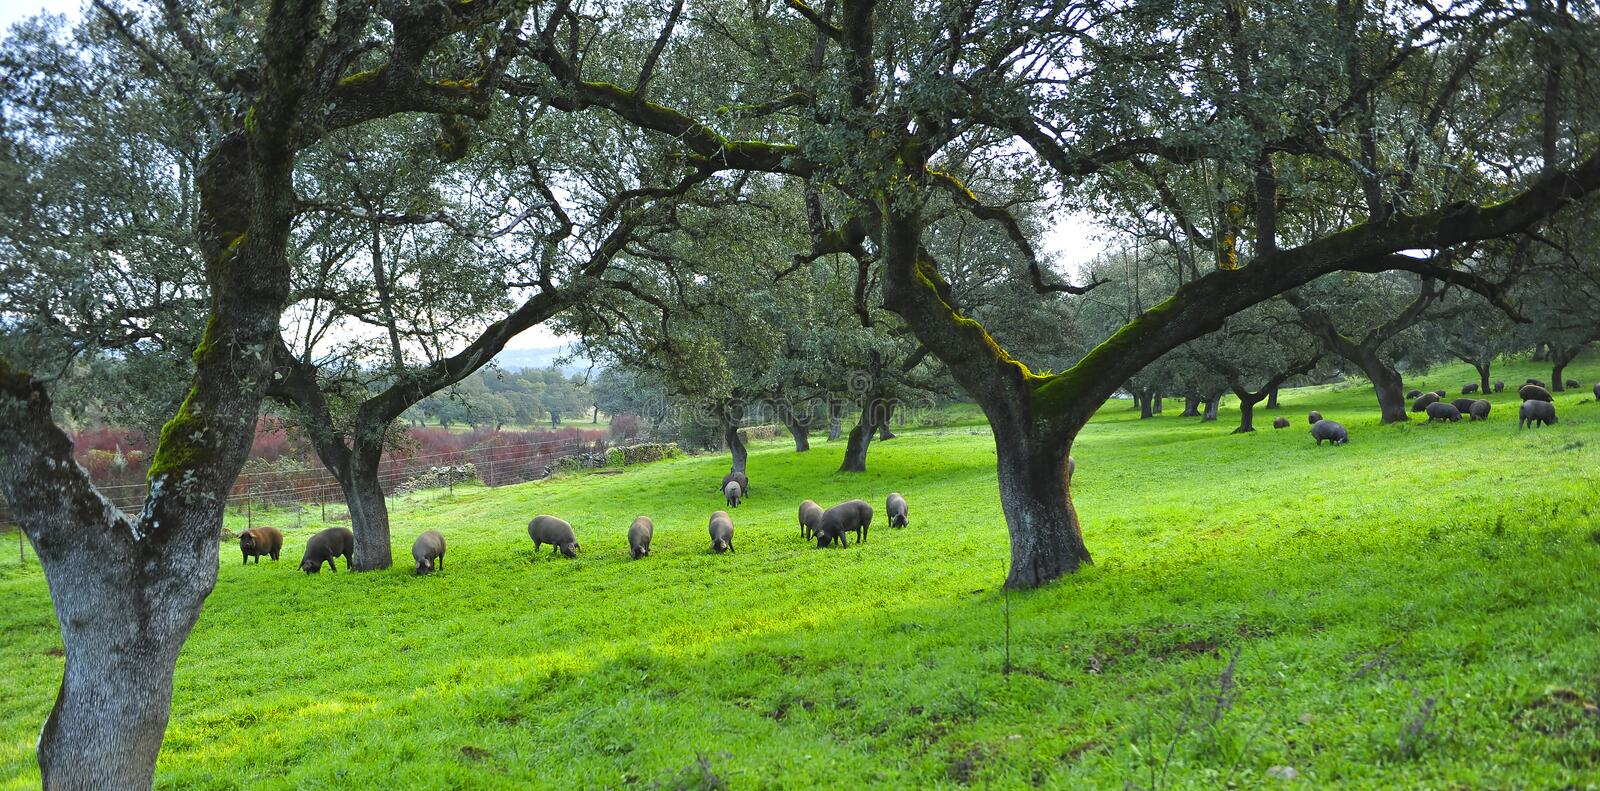 Iberian pigs feeding on acorns near the village of Cumbres Mayores, Huelva province, Spain. Spring landscape in Andalusia on a farm dedicated to raising pork in stock images